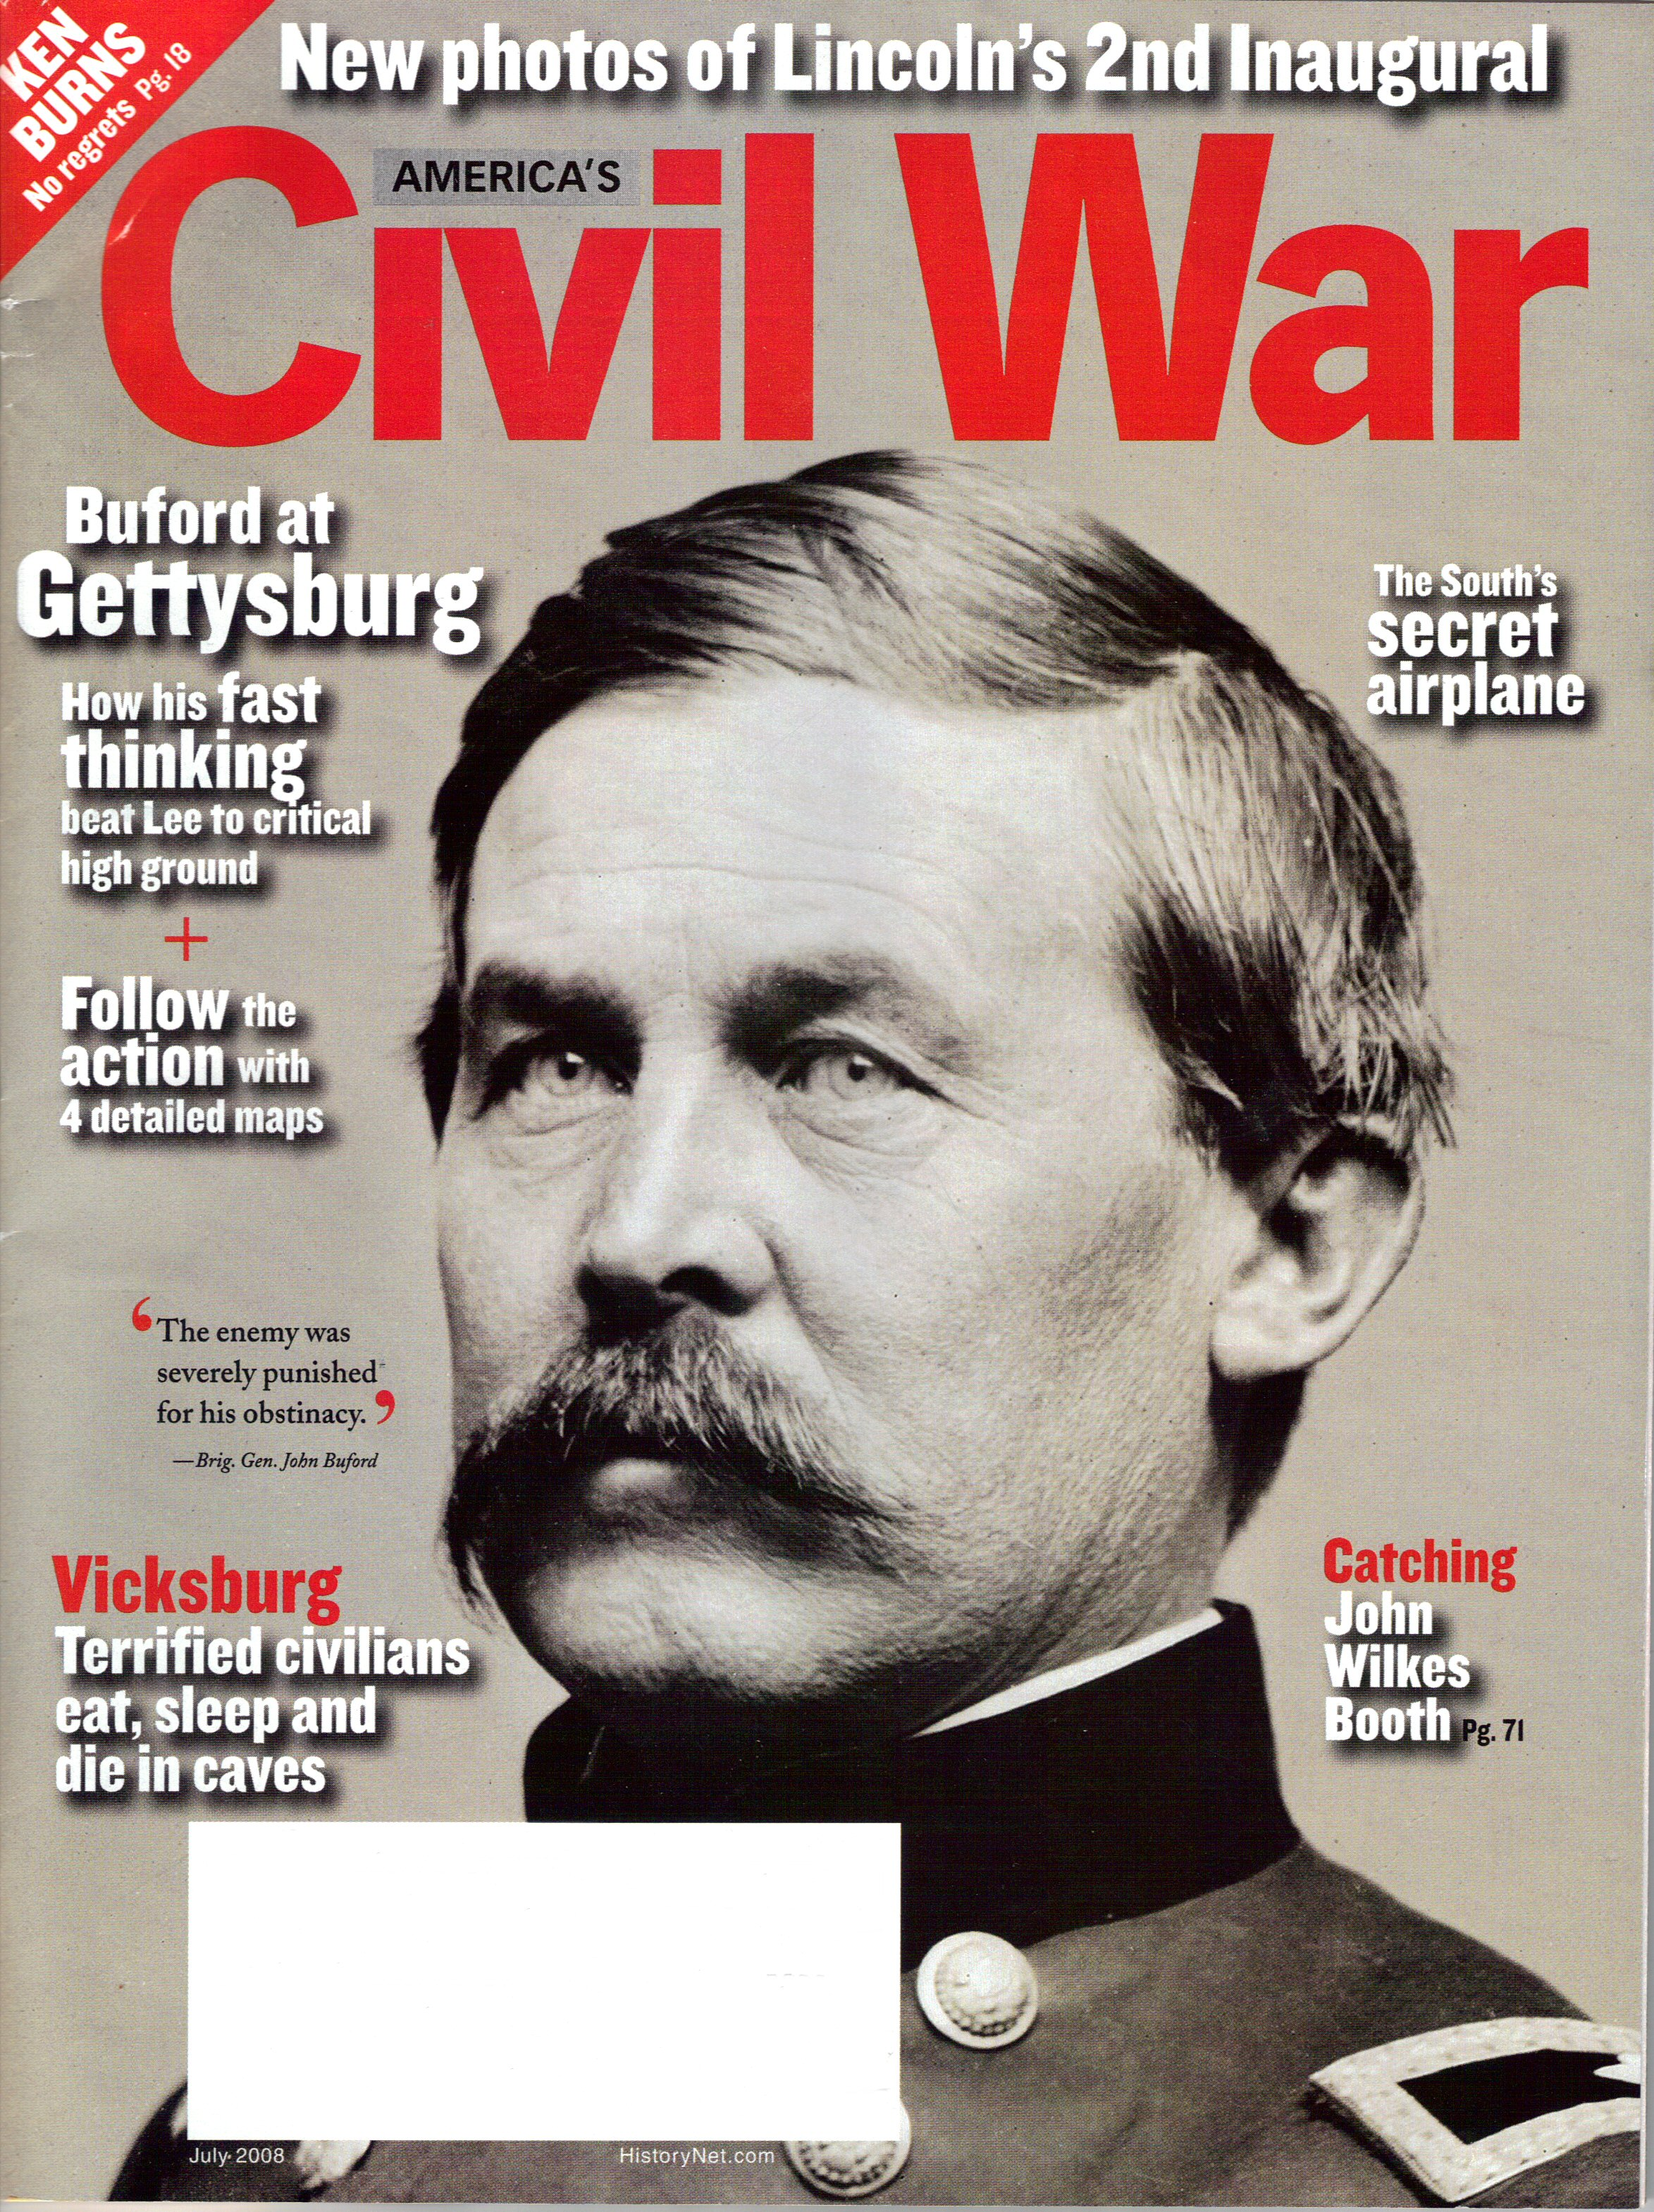 Americas Civil War, Volume 21, Number 3 (July 2008)